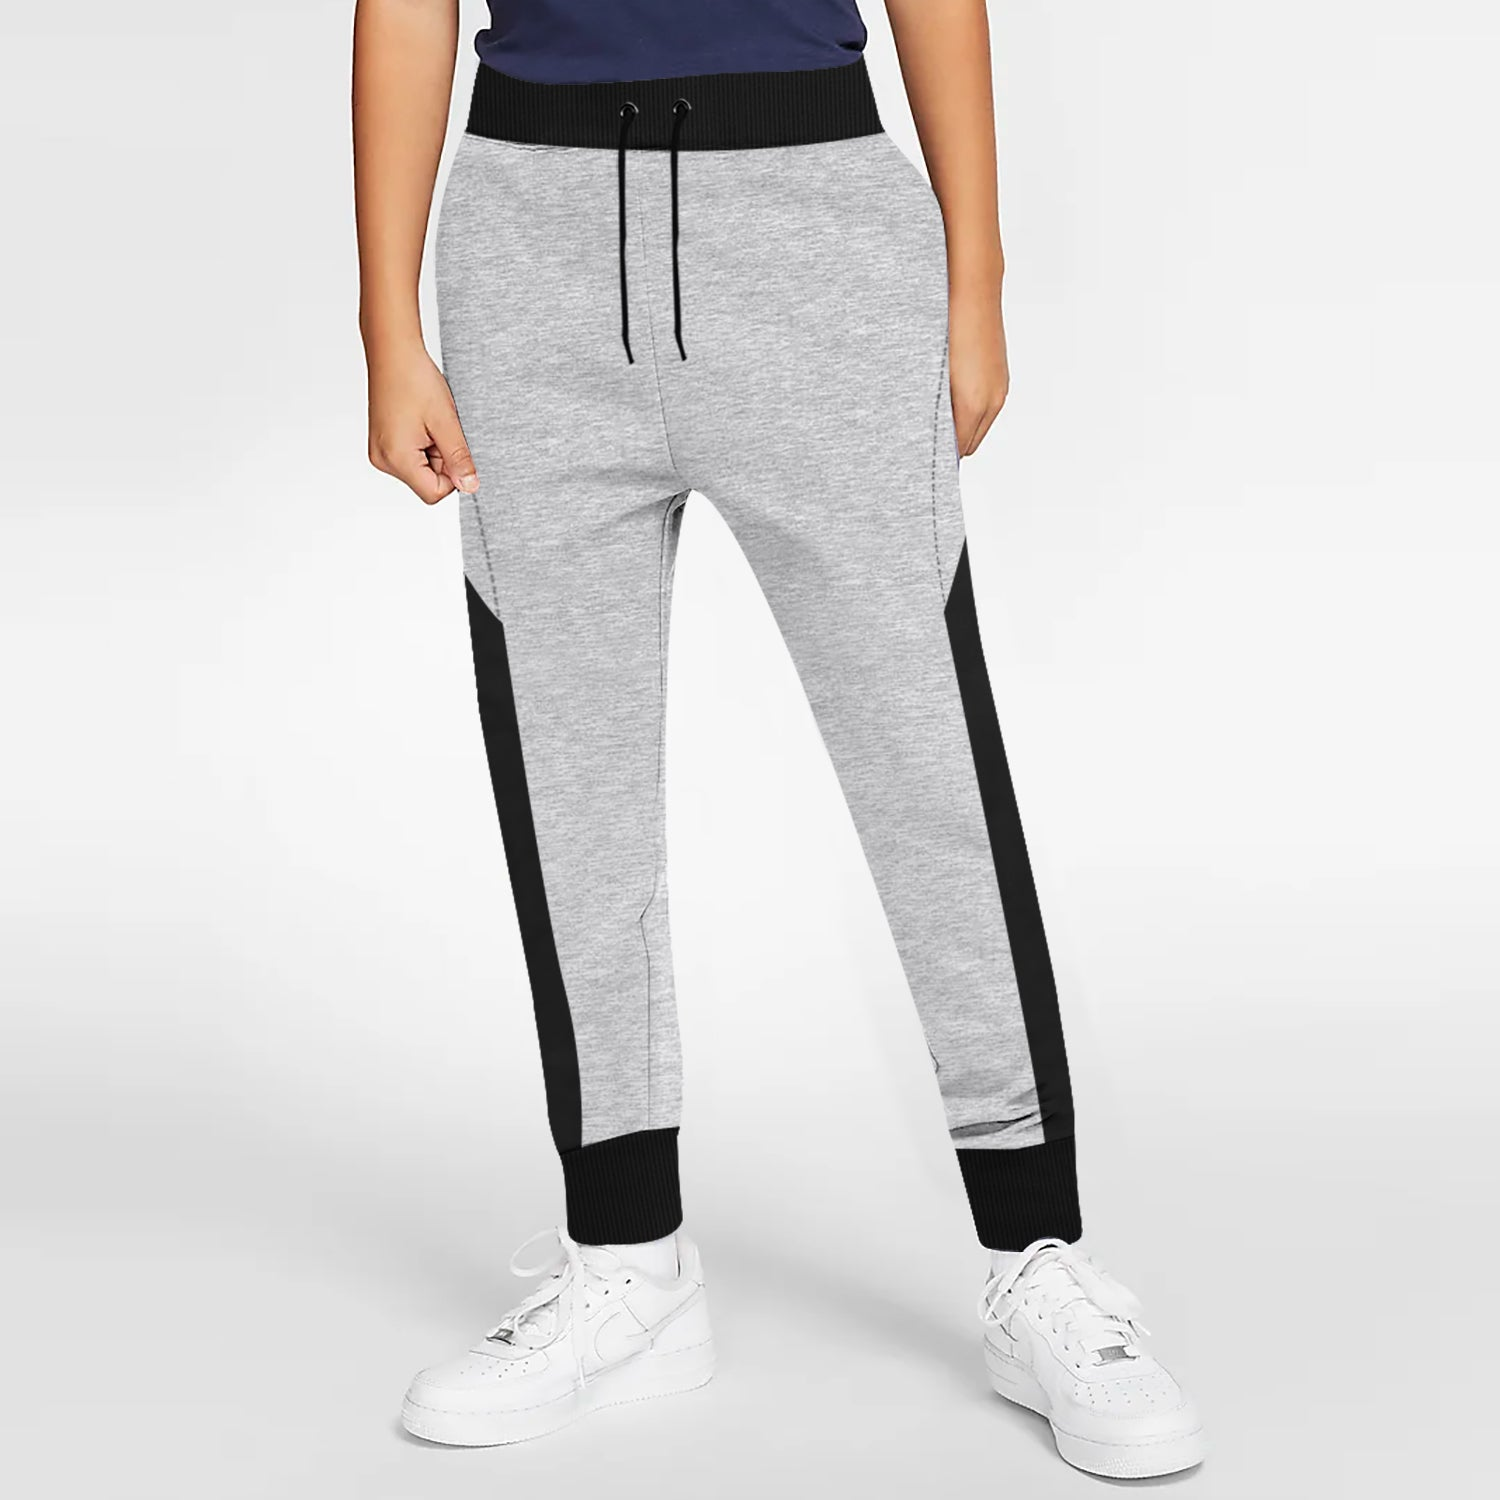 Uneek Single Jersey Jogger Trouser For Boys-Grey Melange & Black-BE10198